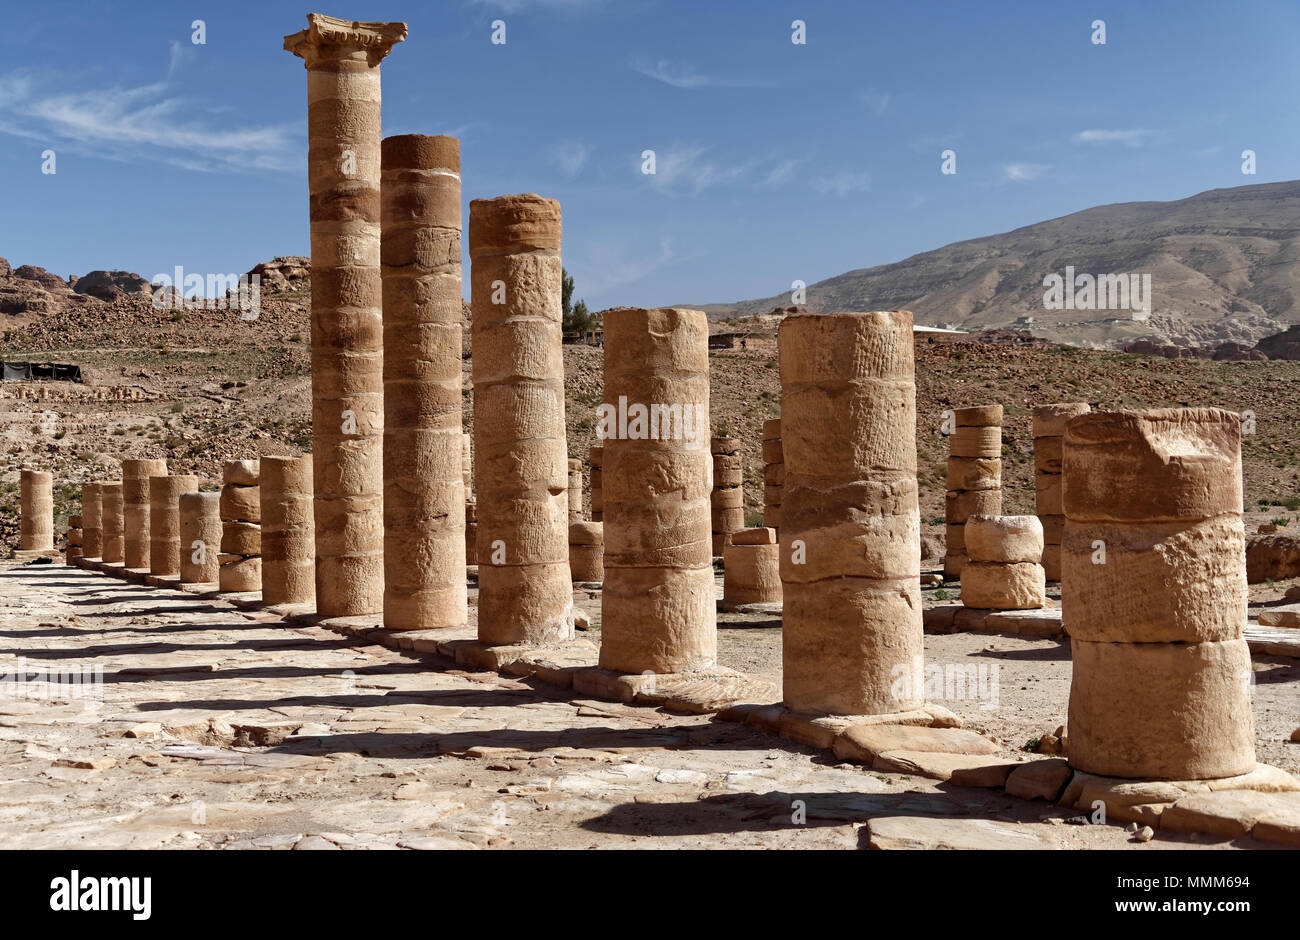 Pillars of the Romans in the Necropolis of Petra, Jordan, middle east Stock Photo